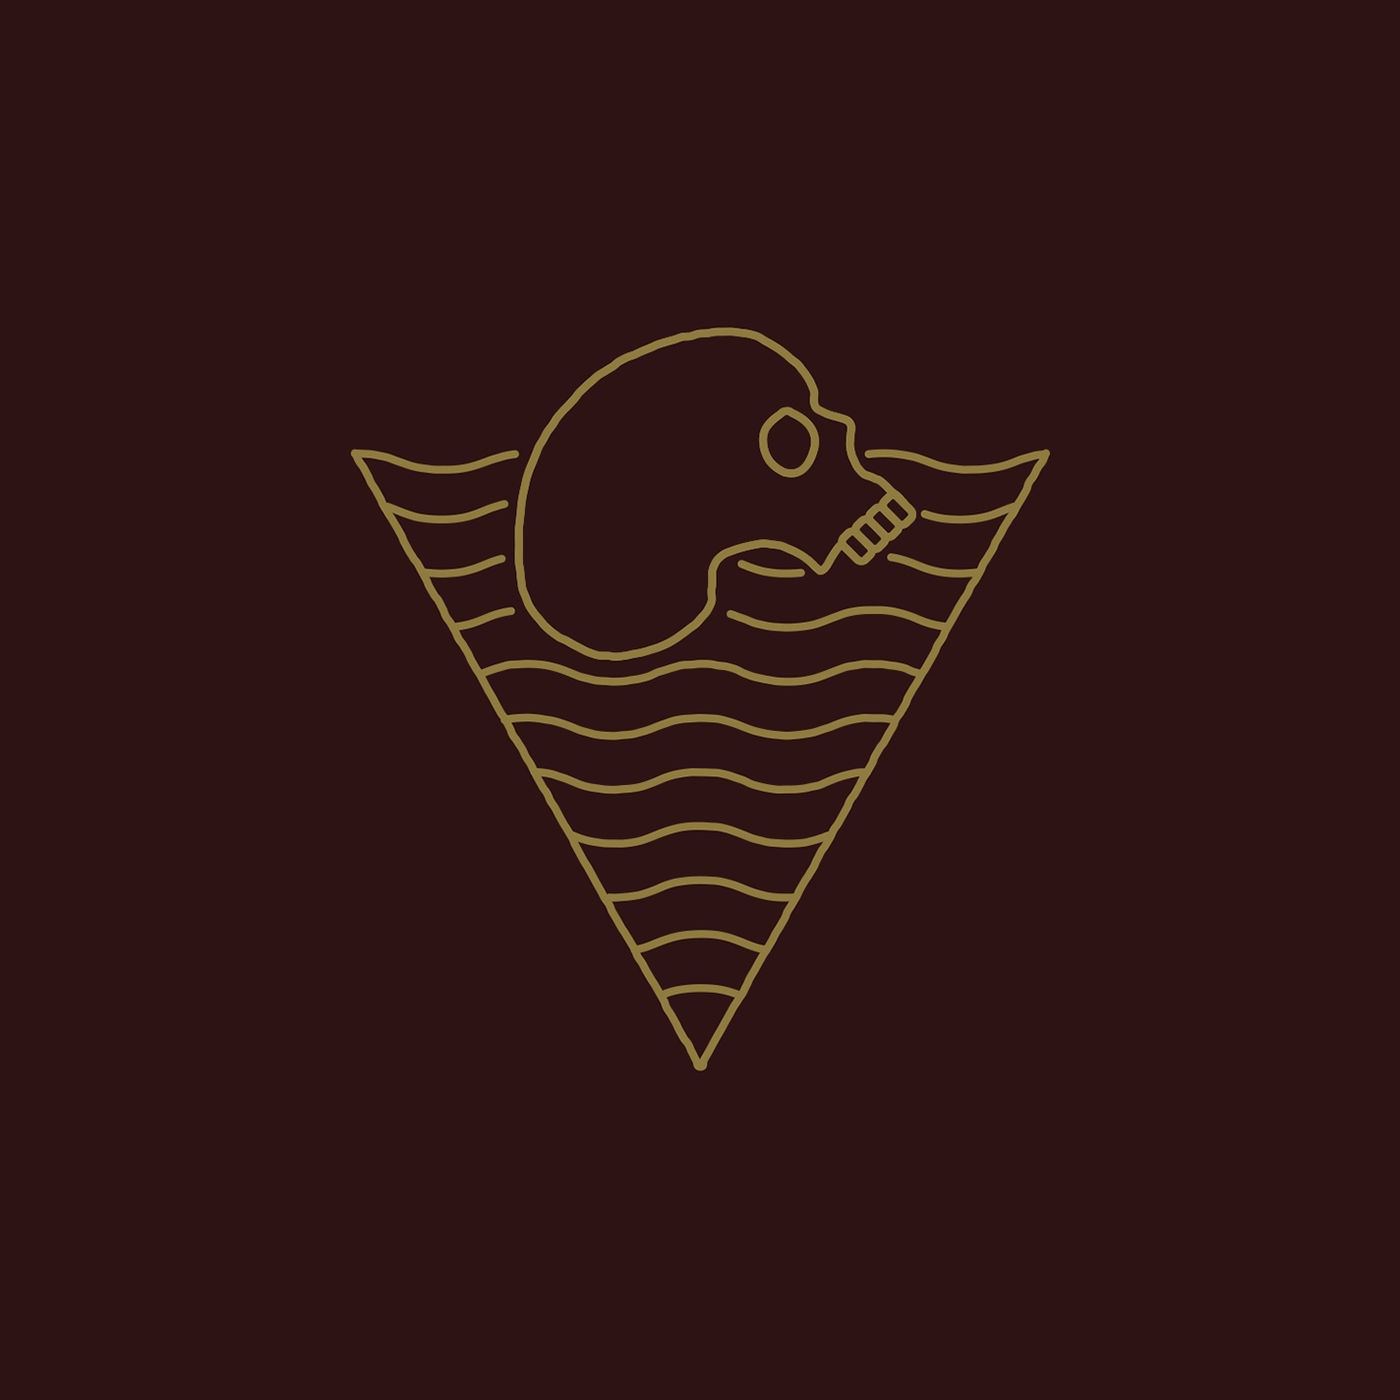 Trivium - Drowning In Sound [Single] (2019)